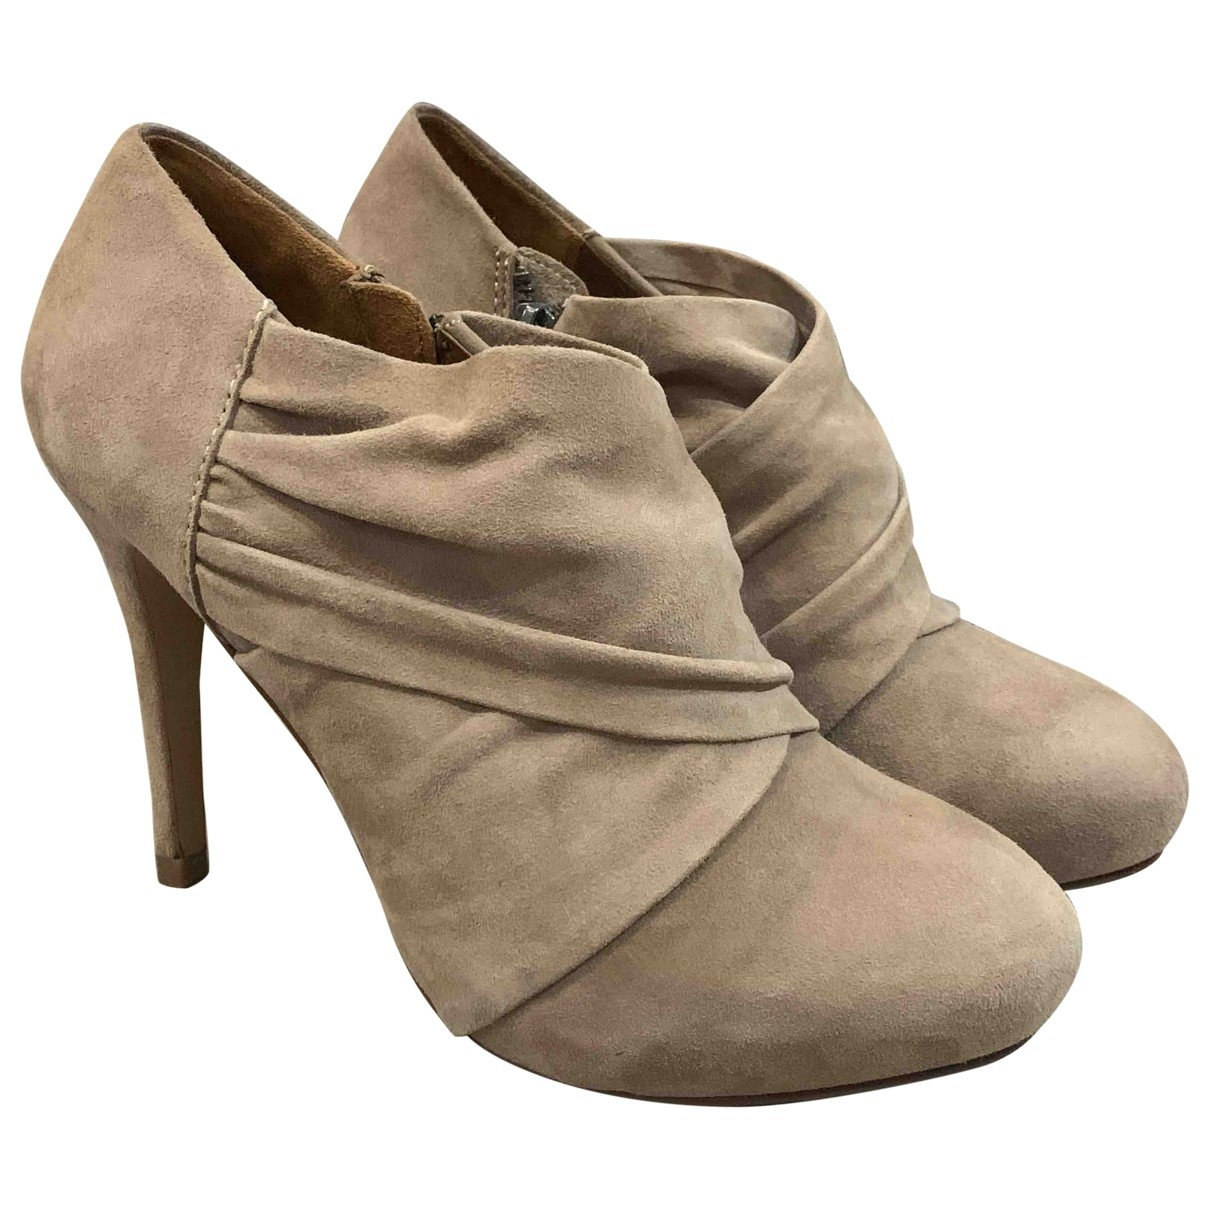 Zara \N Beige Suede Ankle boots for Women 39 EU